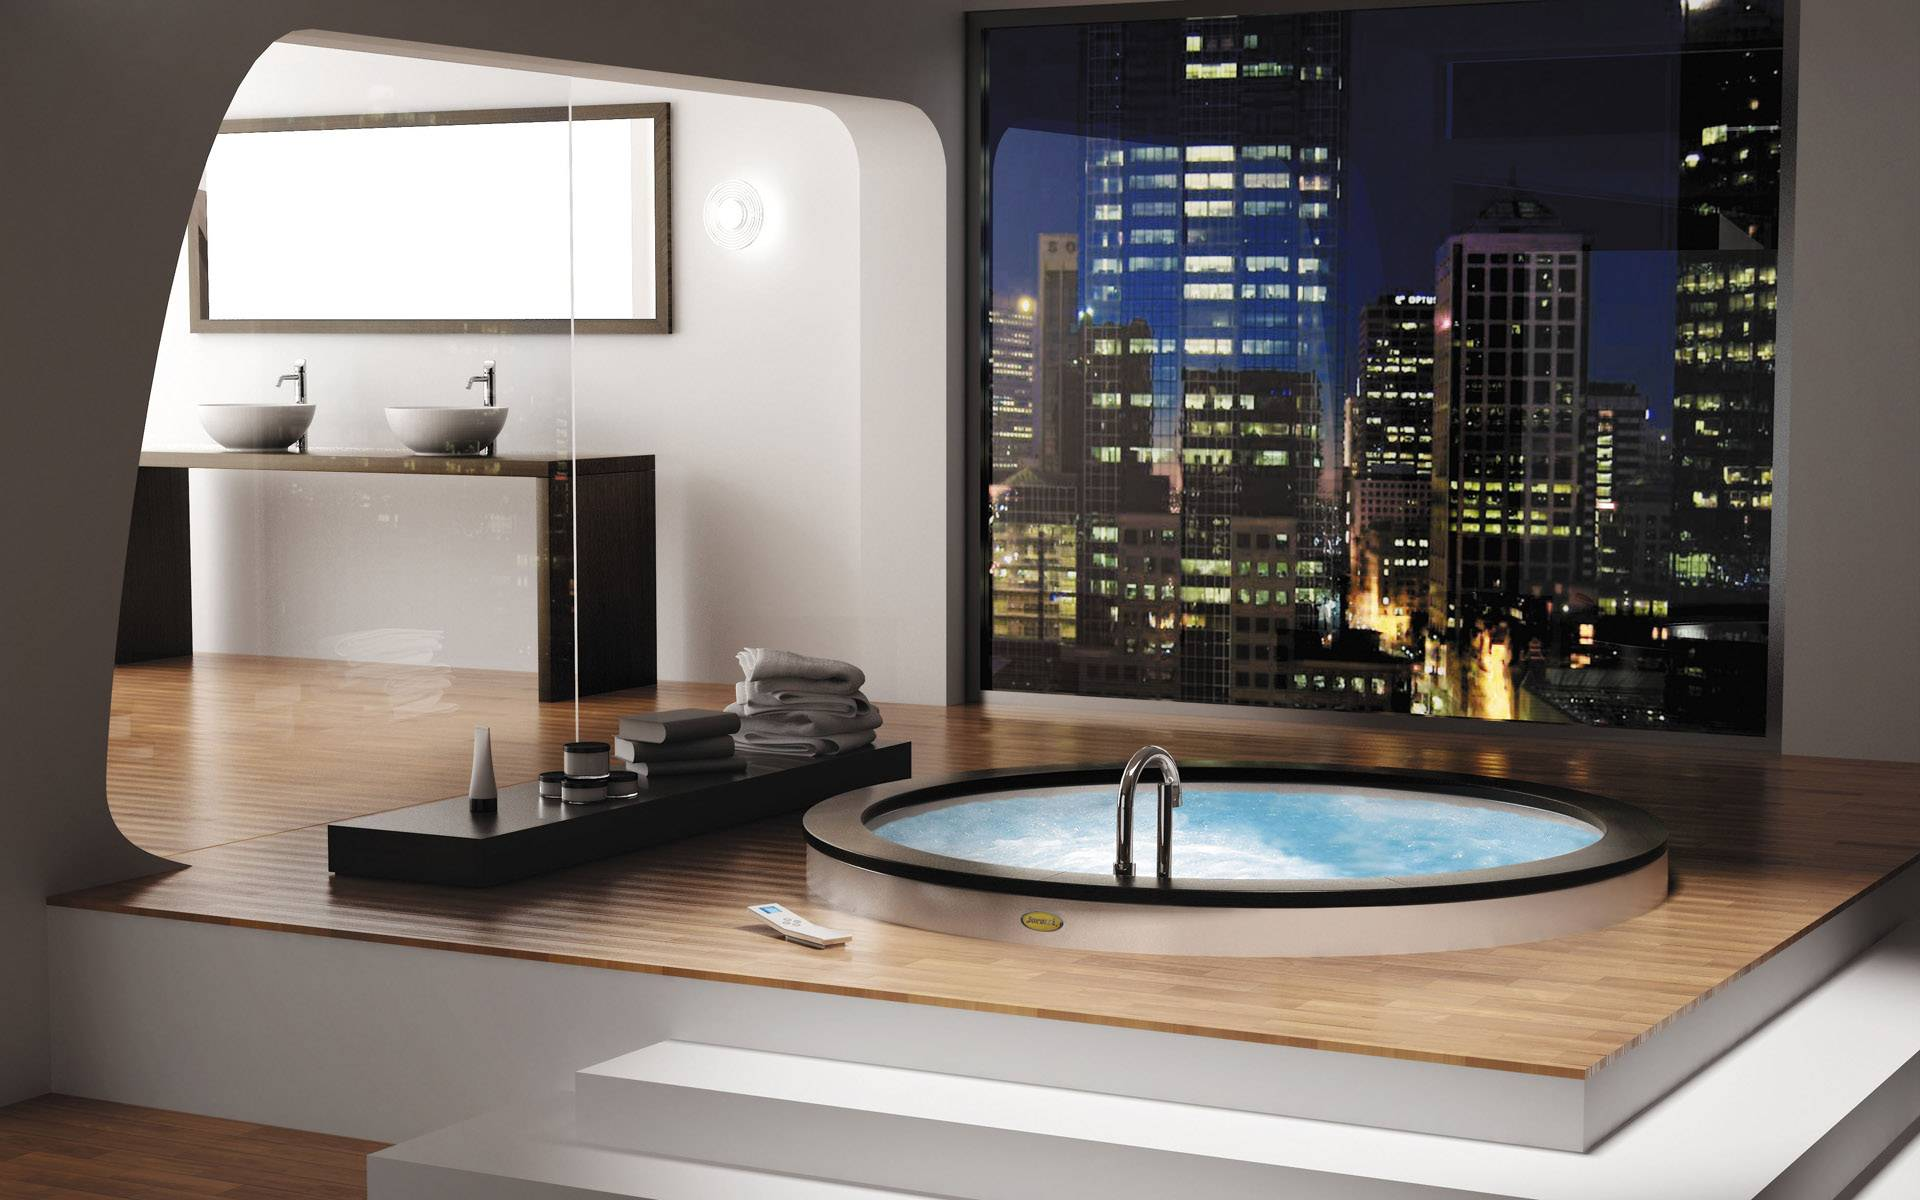 most amazing luxury bathroom design ideas youll fall in love with them - Luxury Bathroom